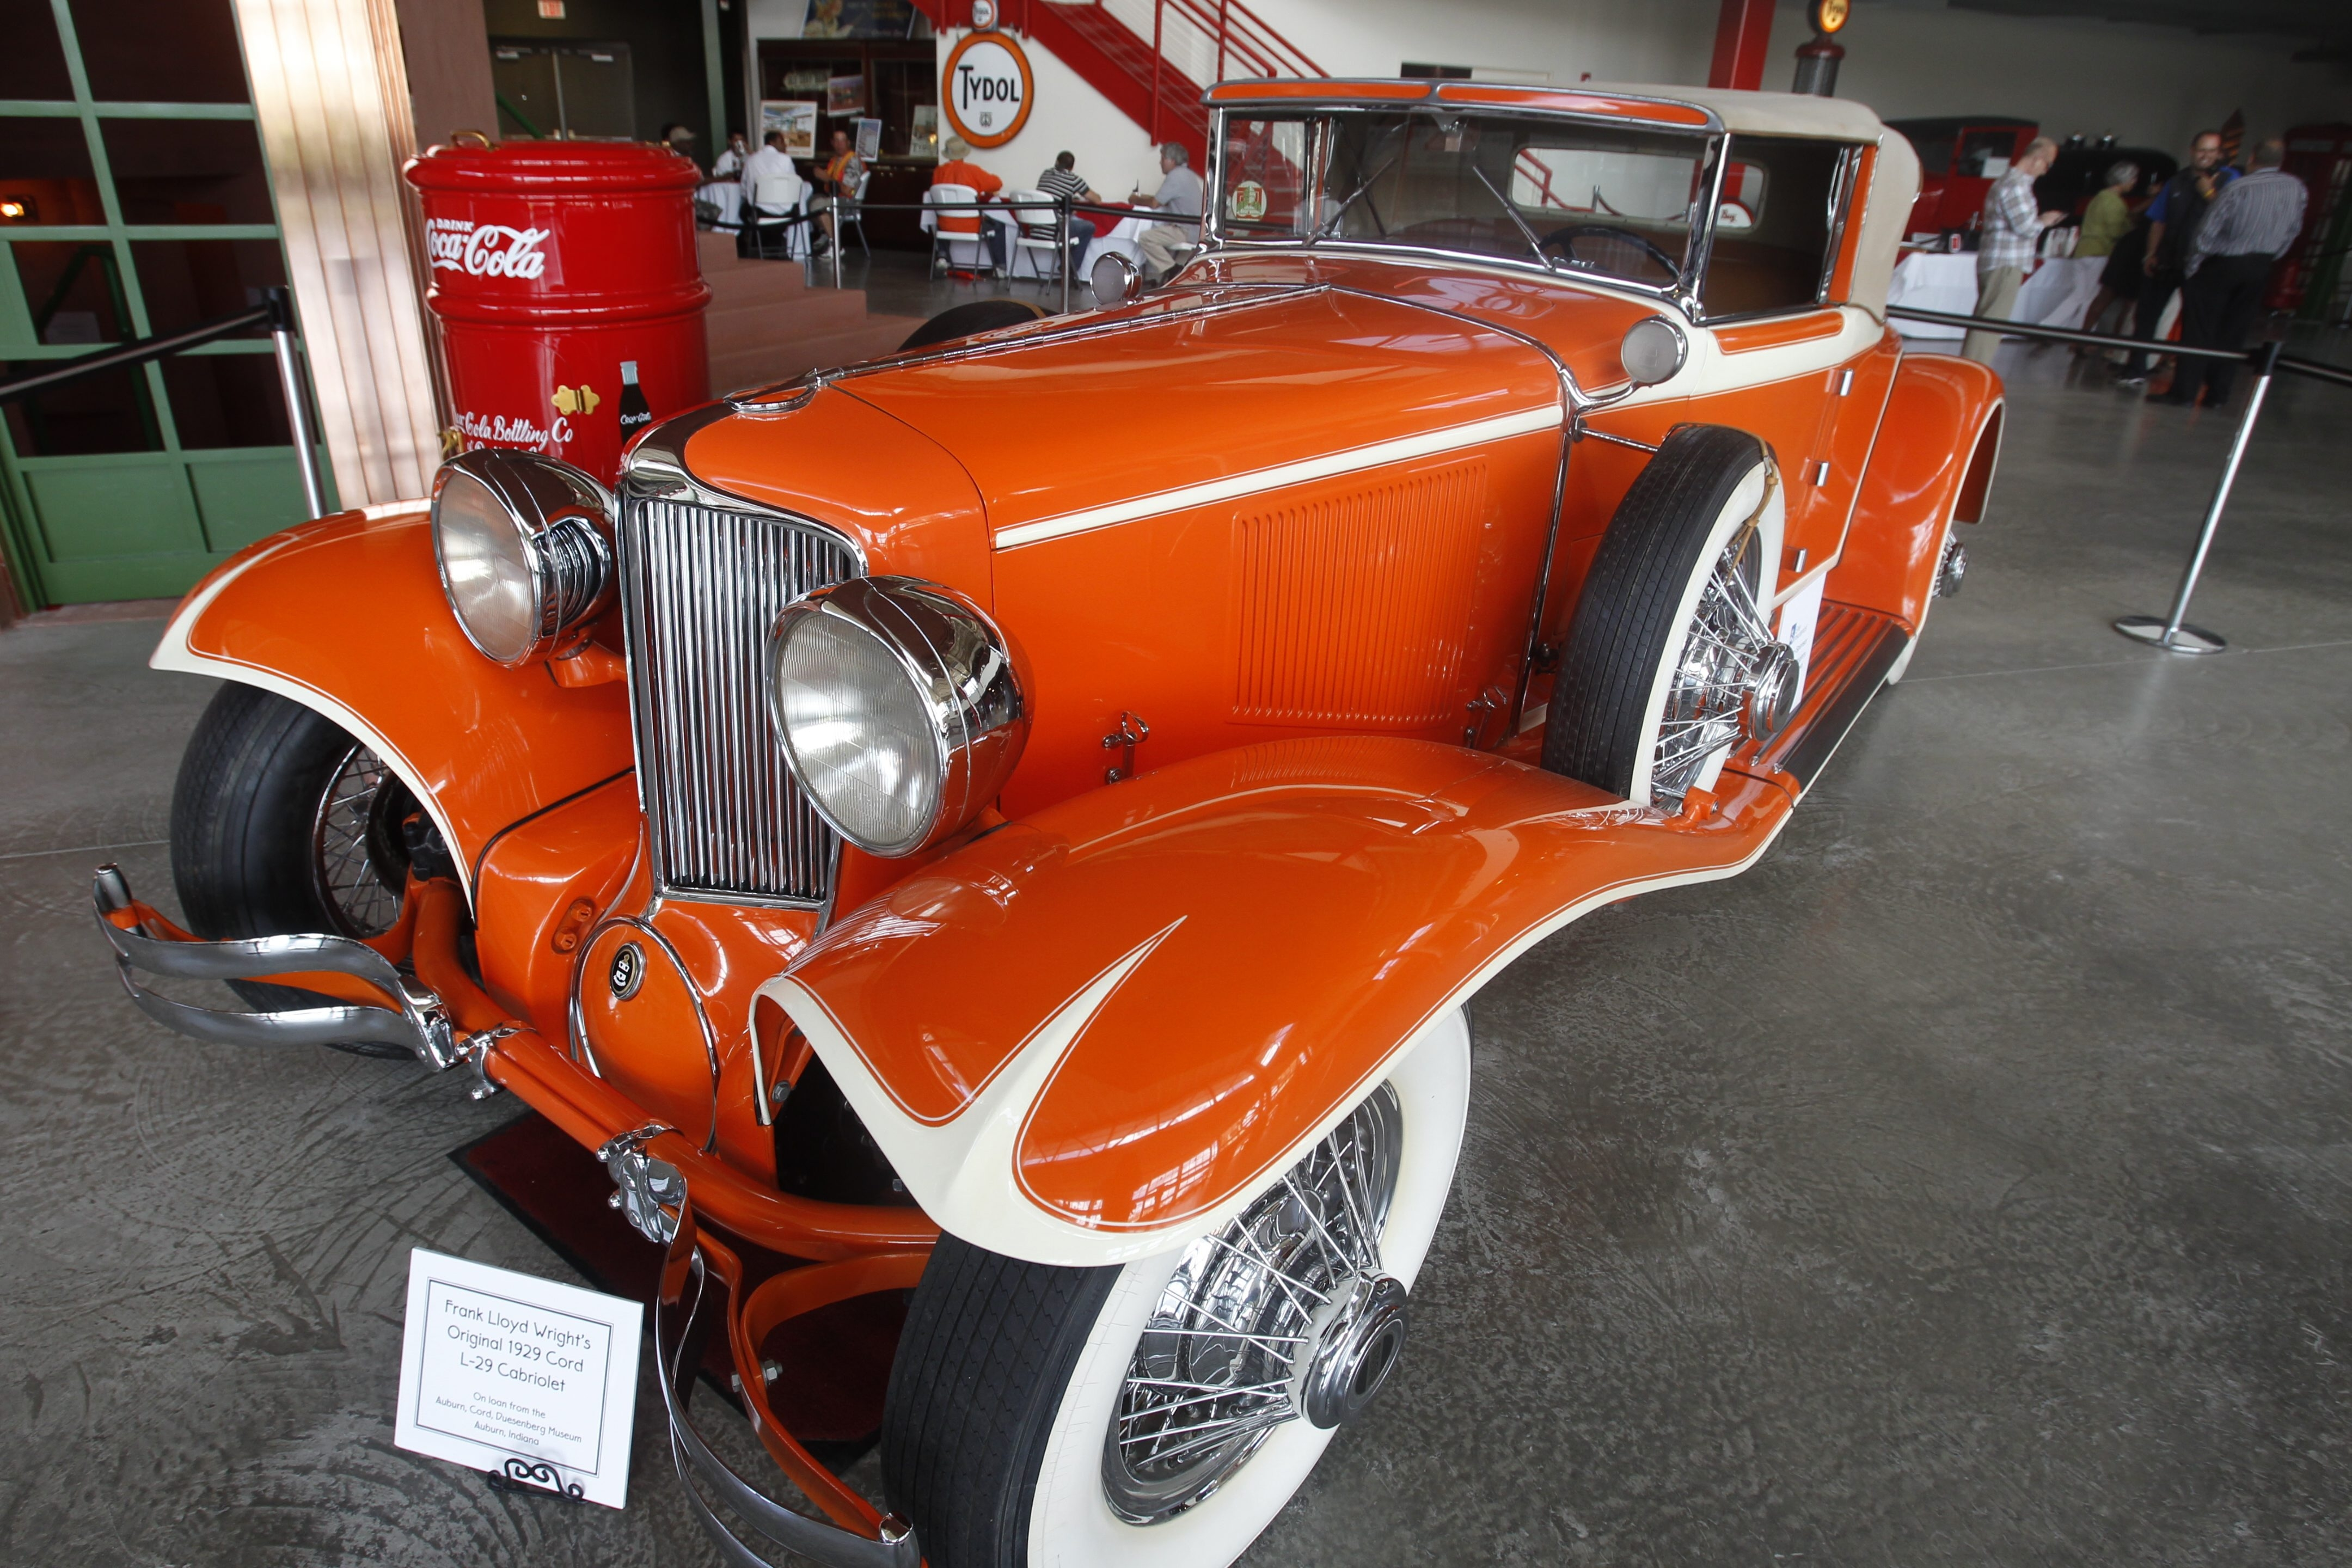 Frank Lloyd Wright once owned this 1929 Cord L-29 Cabriolet, currently on loan from the Auburn Cord Duesenberg Museum  at the Buffalo Transportation Pierce-Arrow Museum.